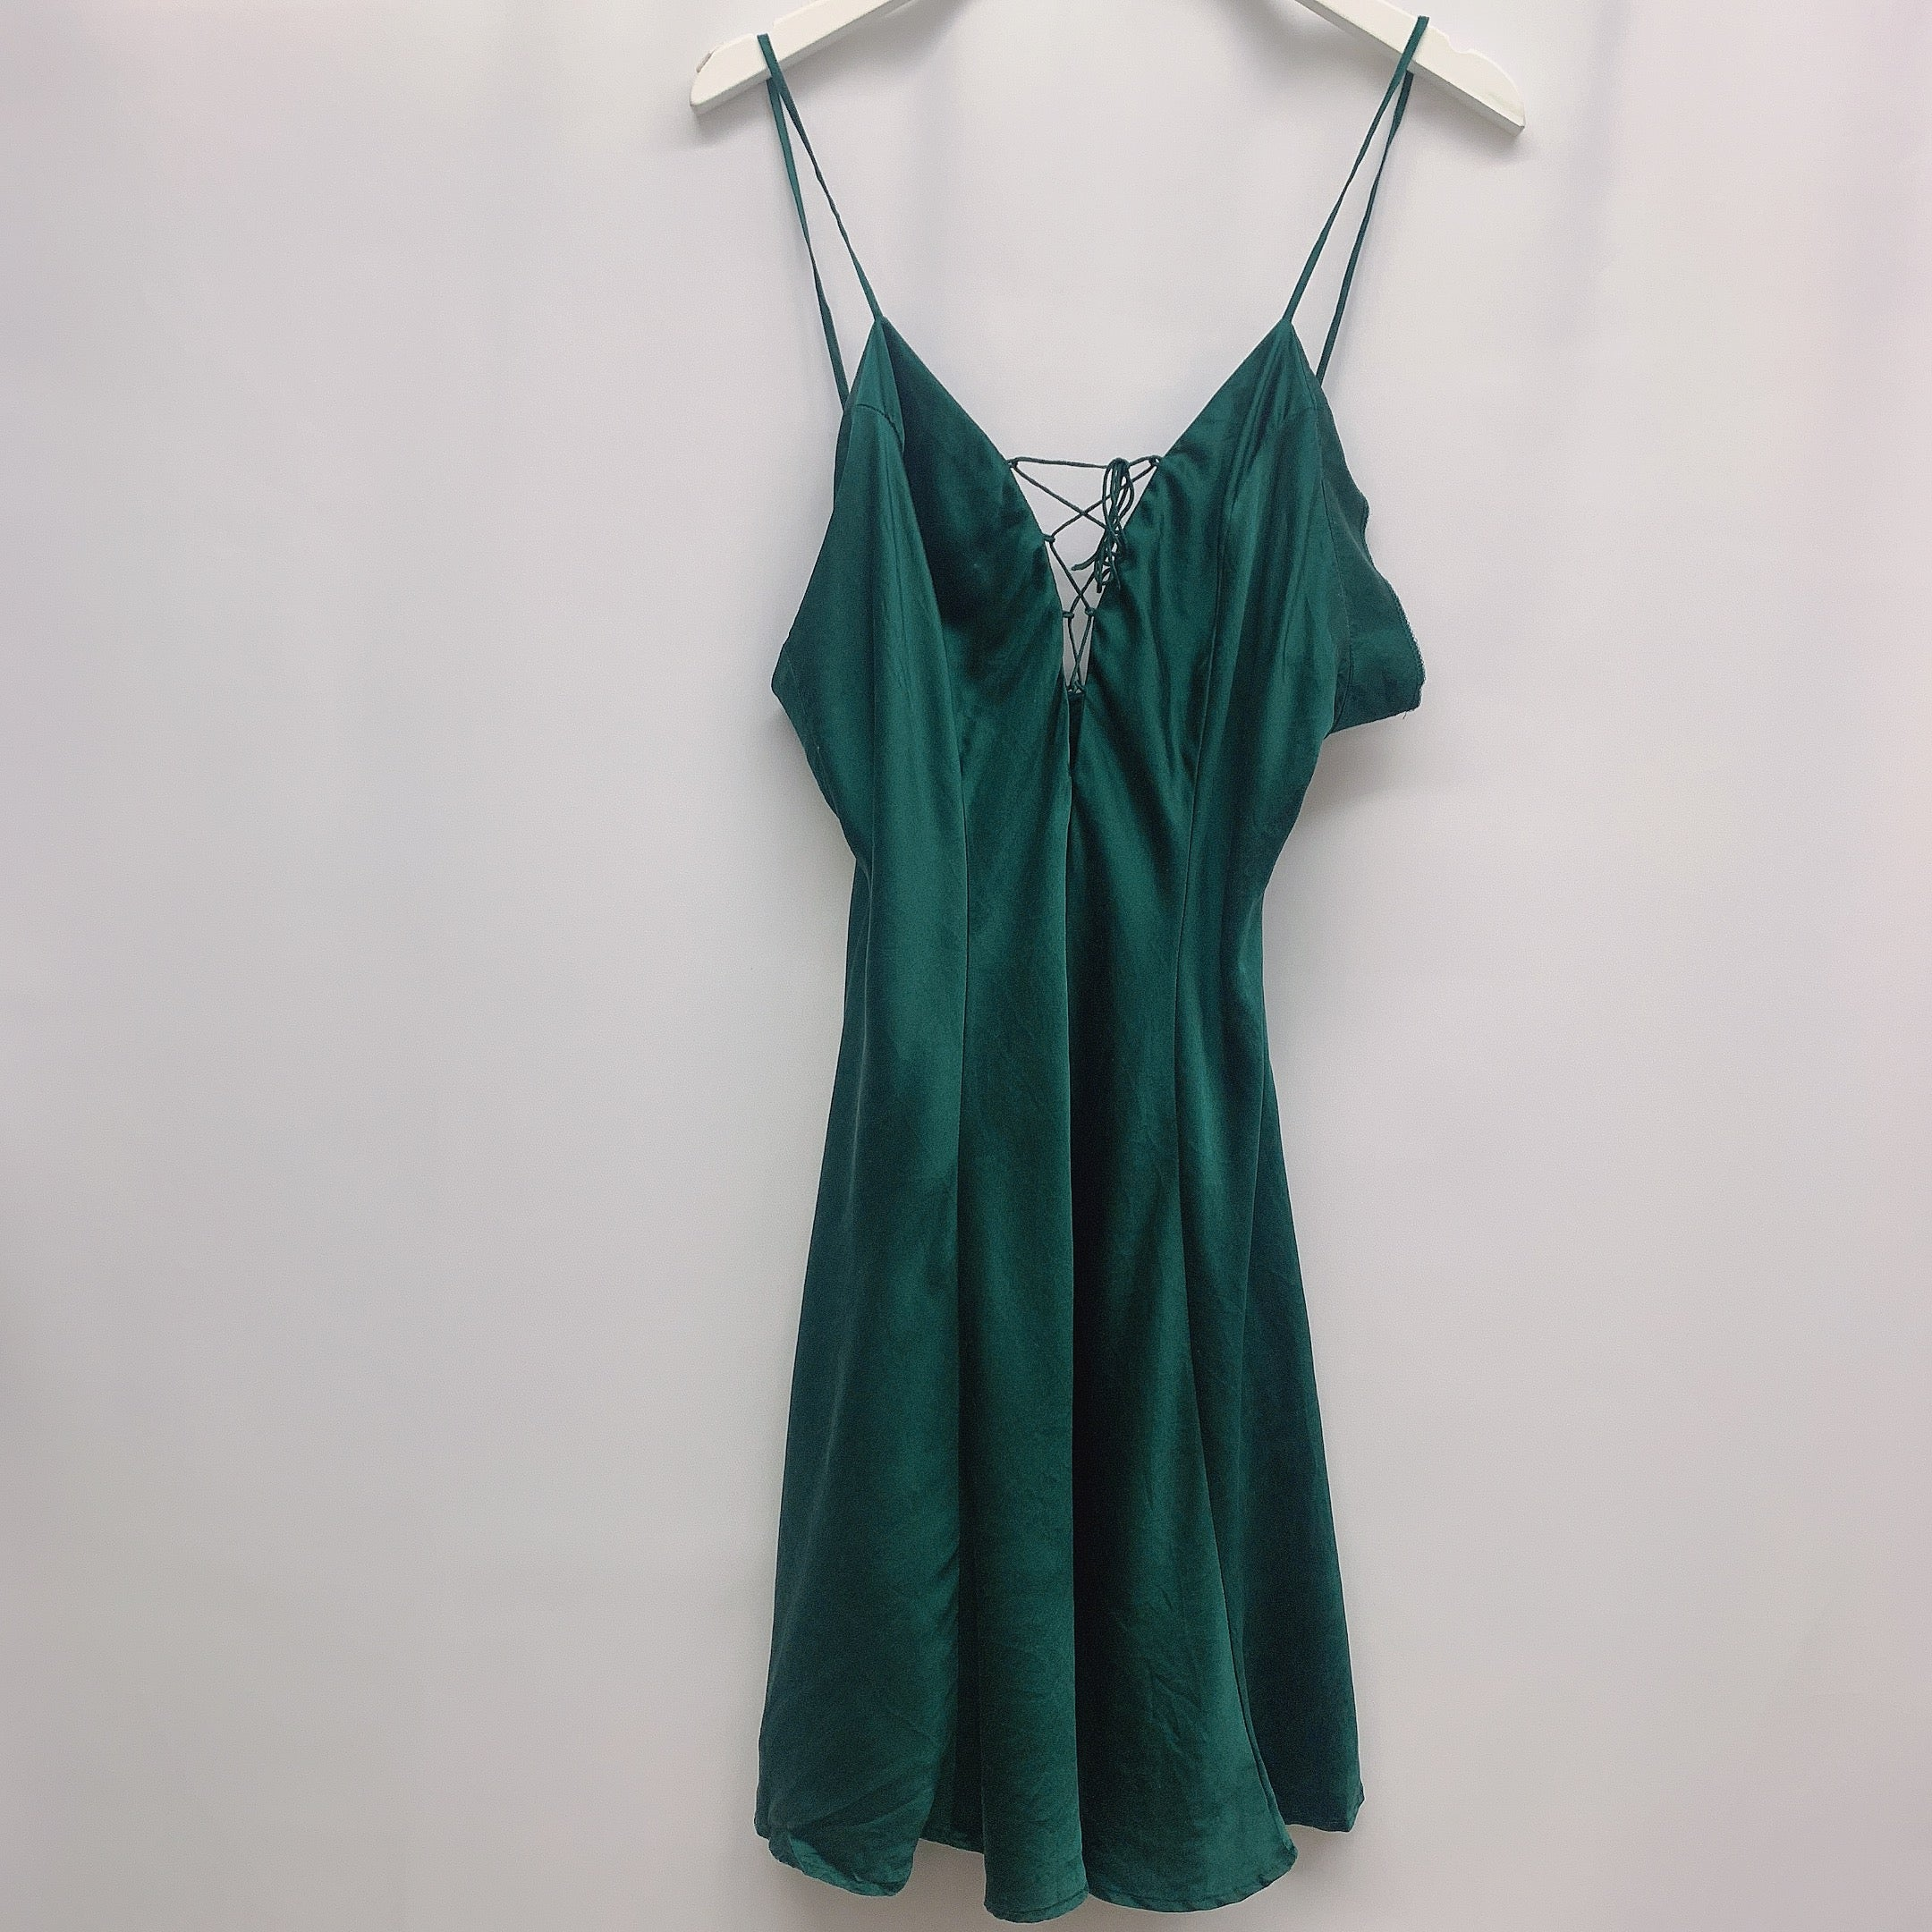 EMERALD SLIP DRESS